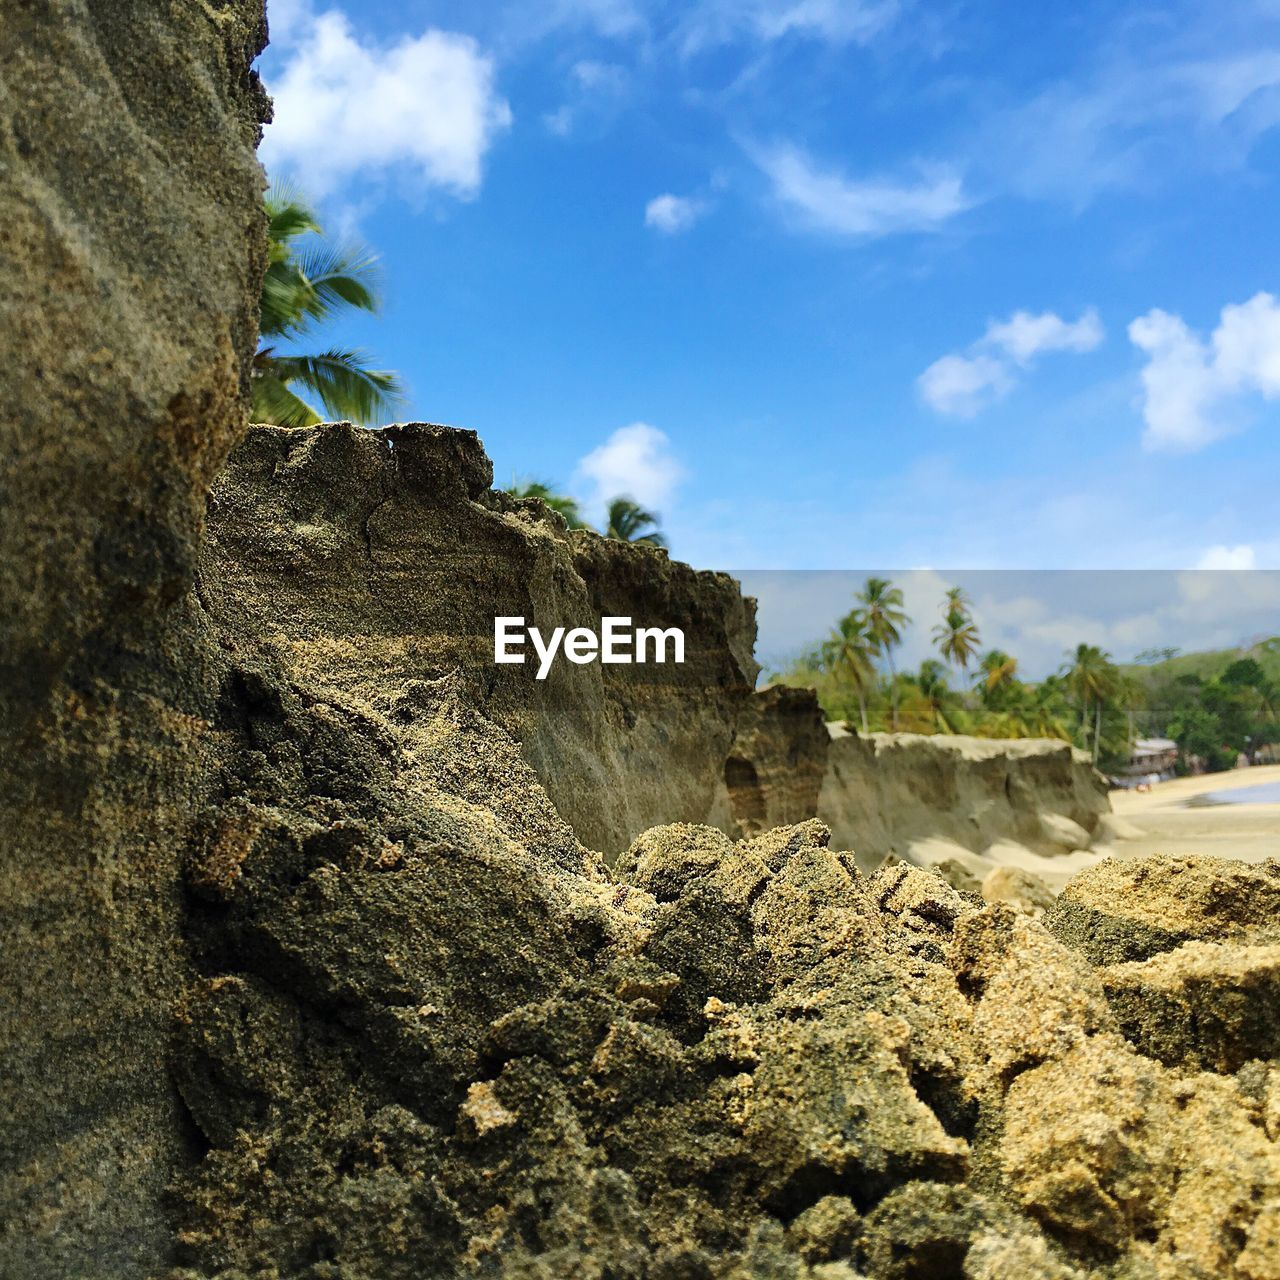 sky, nature, rock - object, day, cloud - sky, tranquil scene, beauty in nature, outdoors, low angle view, no people, scenics, tree, tranquility, physical geography, blue, landscape, cliff, mountain, animal themes